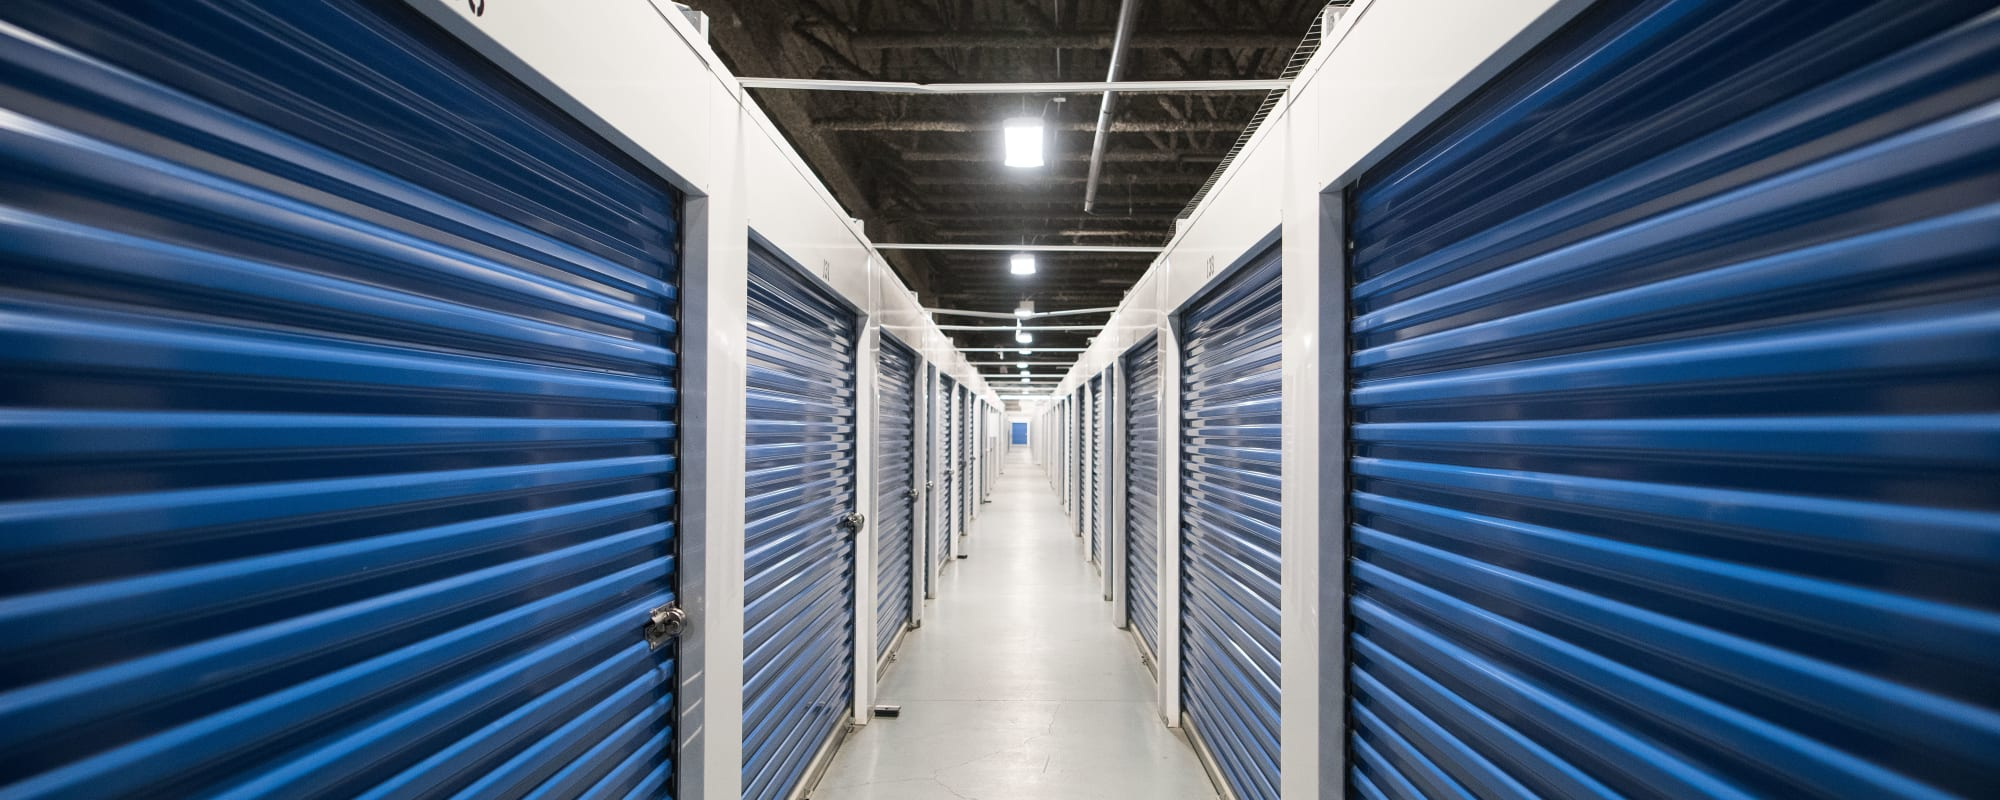 Reviews for Apple Self Storage - Thunder Bay - Intercity in Thunder Bay, Ontario